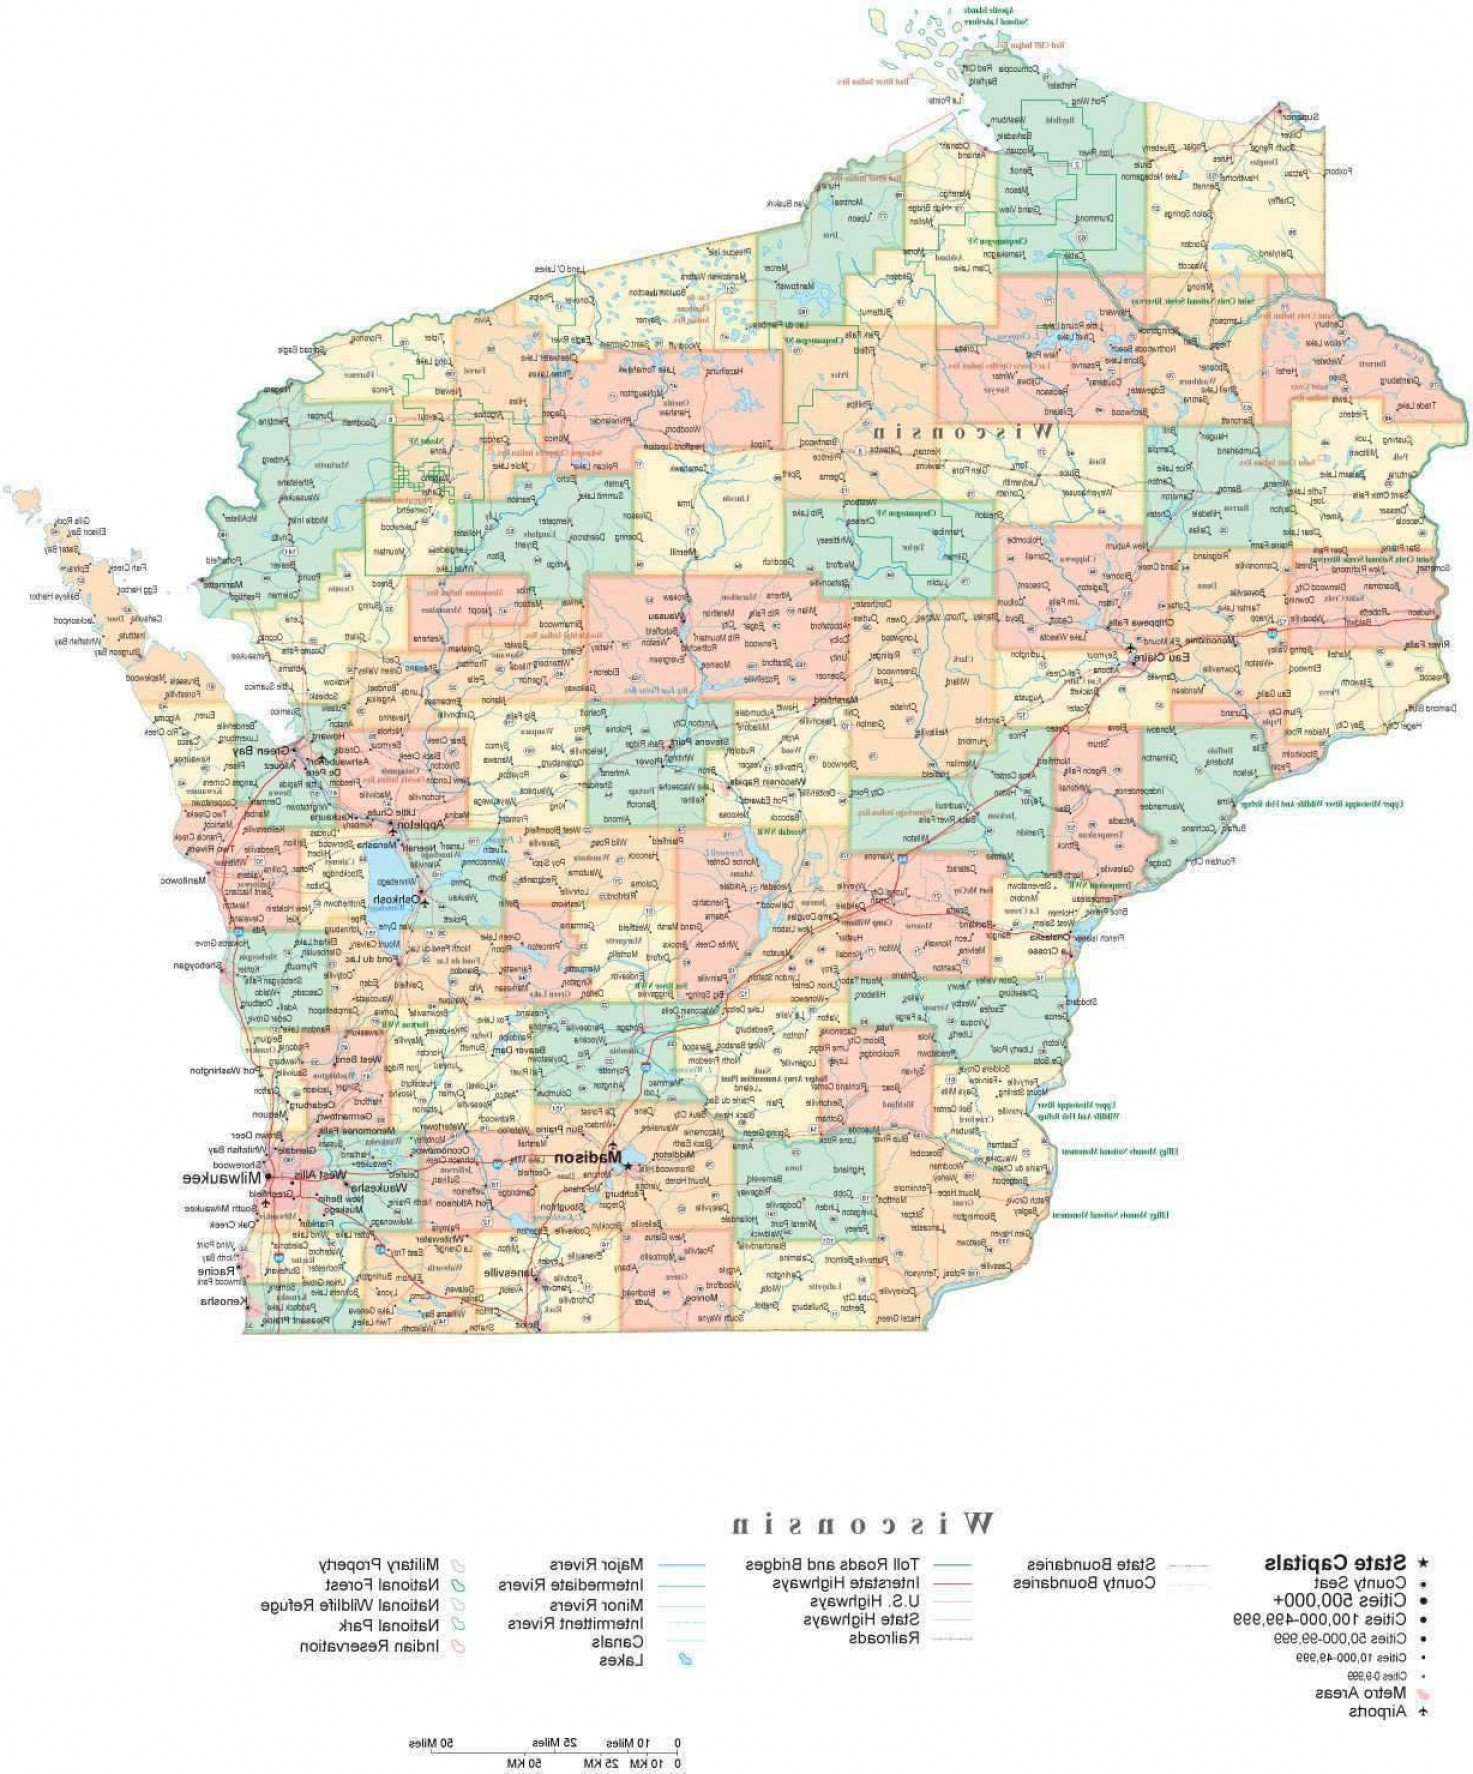 WI County Map Vector: Poster Size High Detail Wisconsin Illustrator Vector State Map Wi Usa